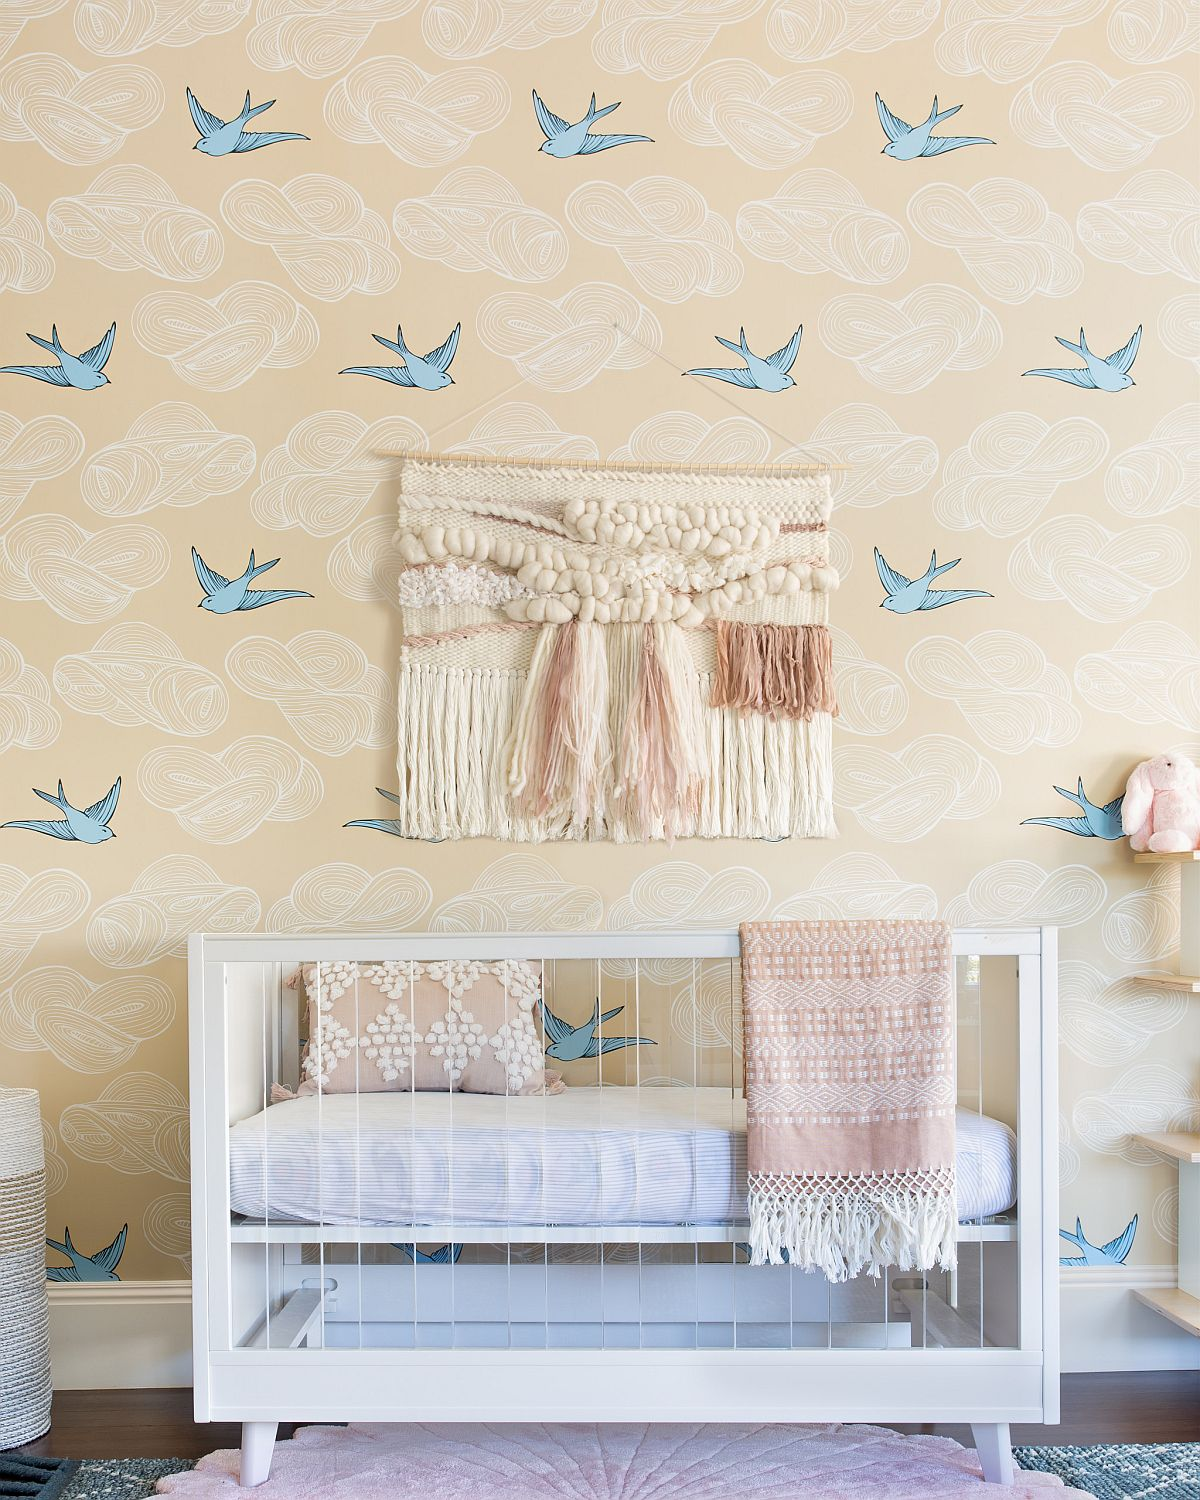 Adding wallpaper to the nursery gives it a more lively backdrop